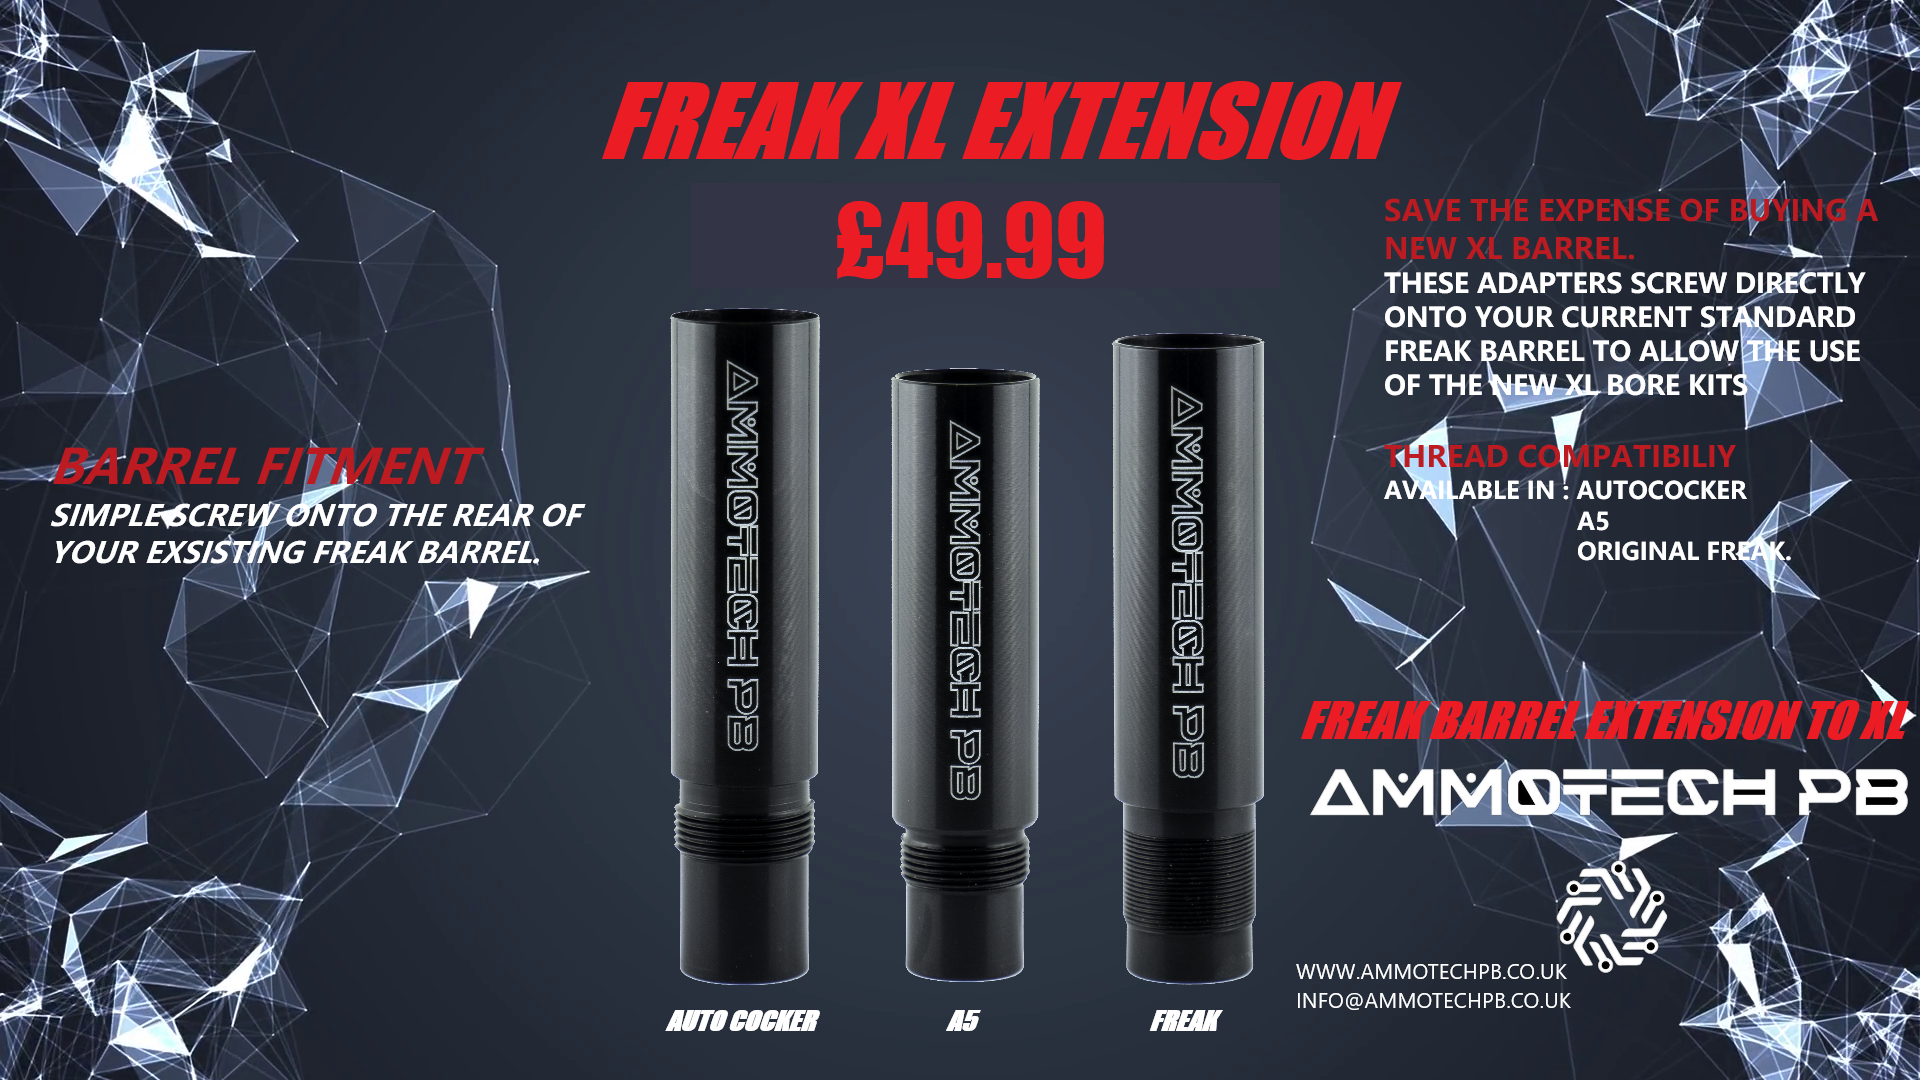 Ammotech Freak to Freak XL BARREL EXTENSION